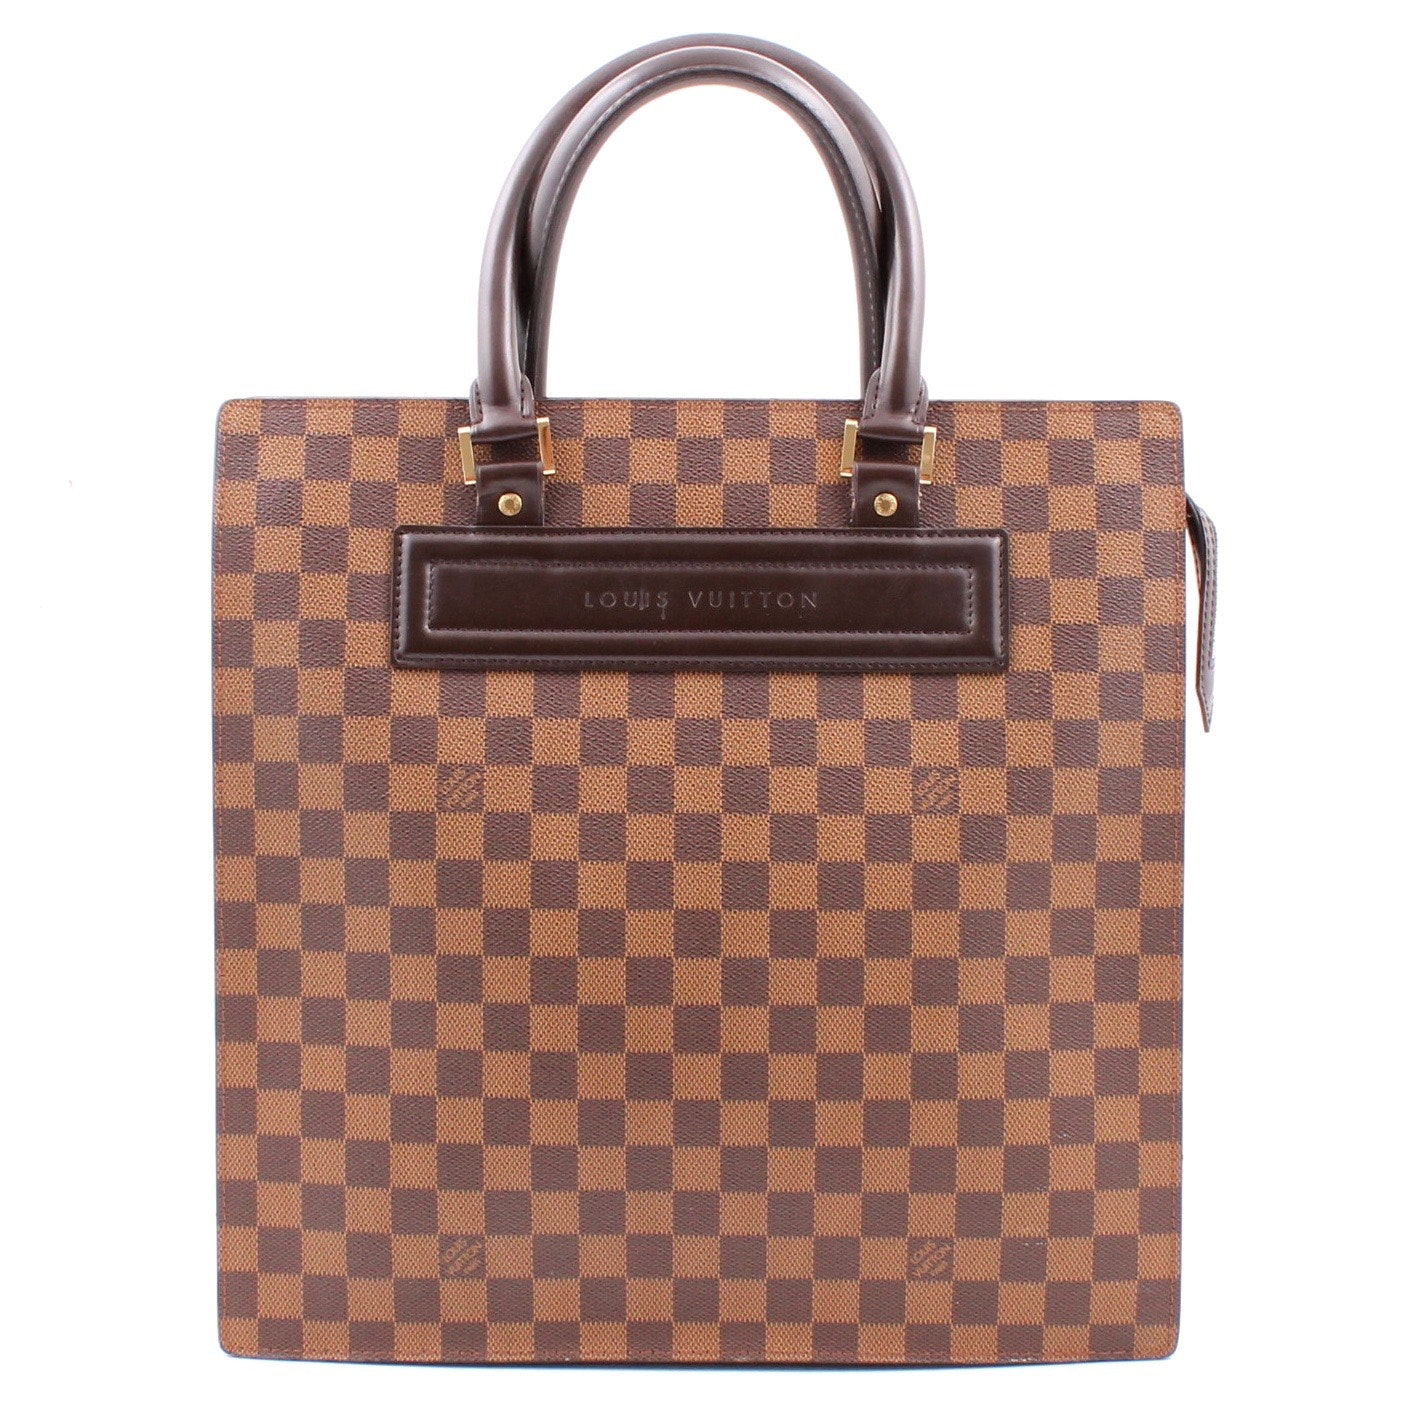 Louis Vuitton Damier Ebene Sac Plat Tote Bag